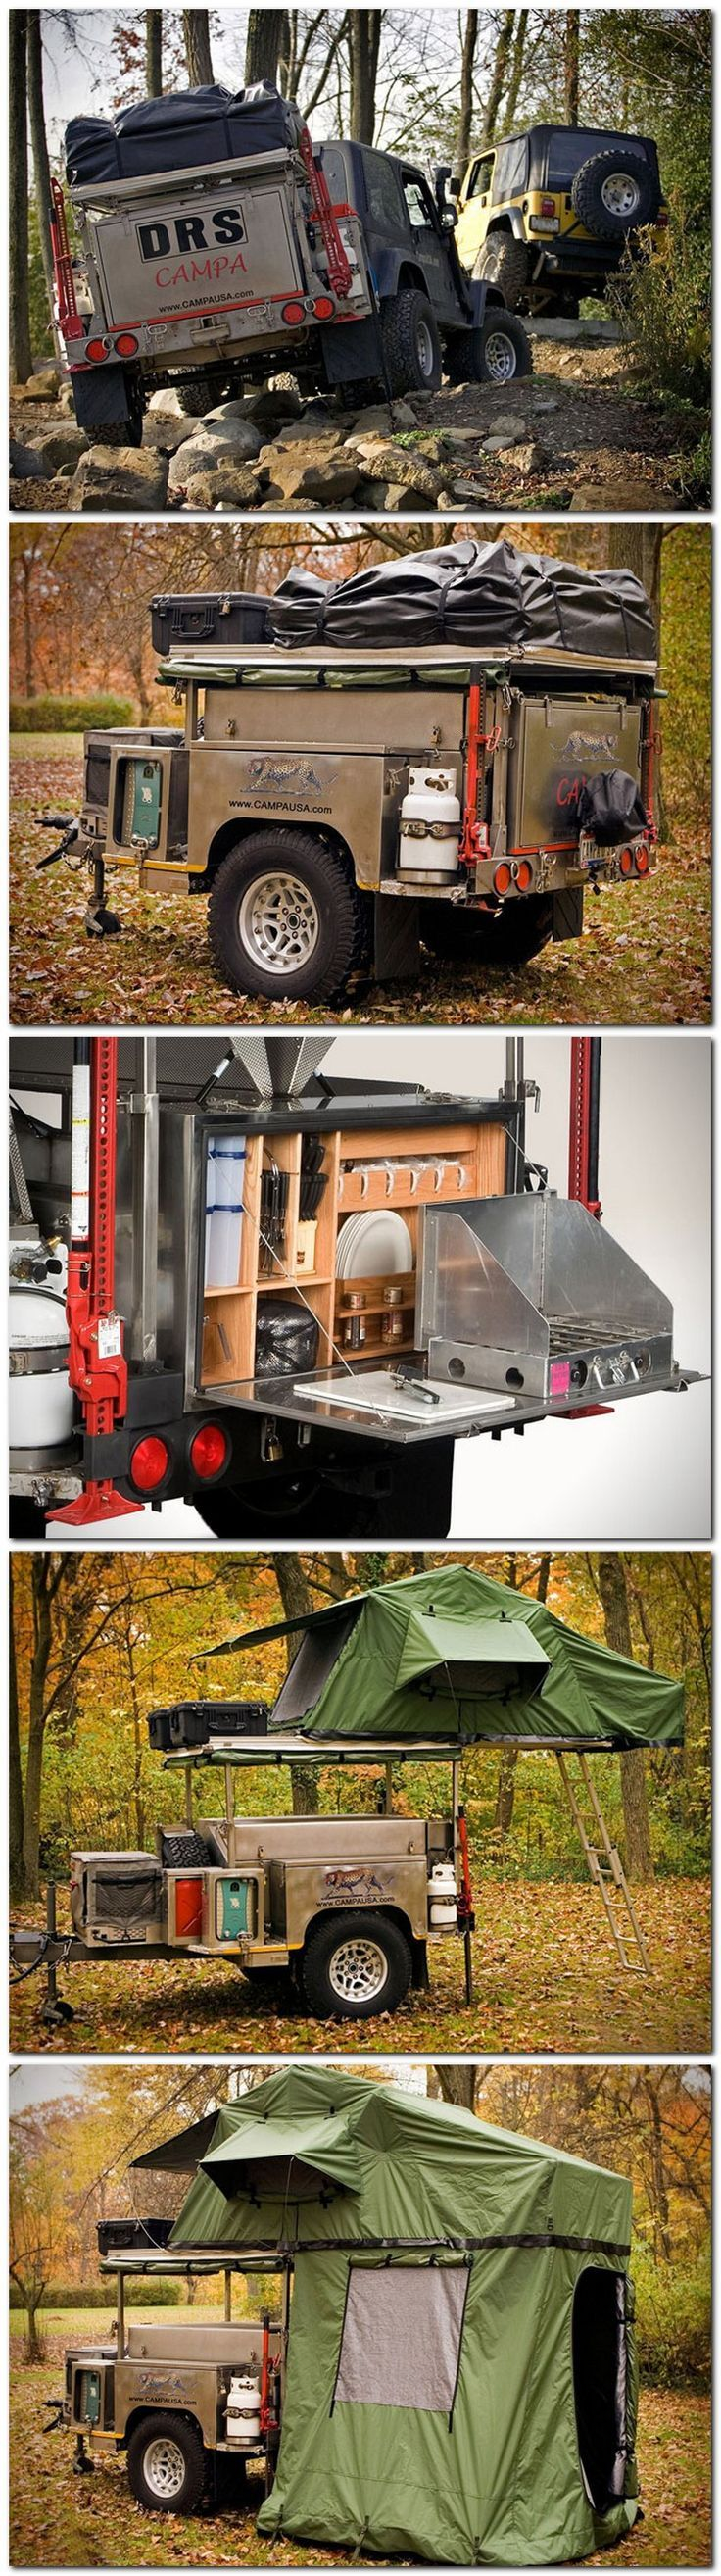 All Terrain Camping Trailer by Campa USA | adventureideaz.com